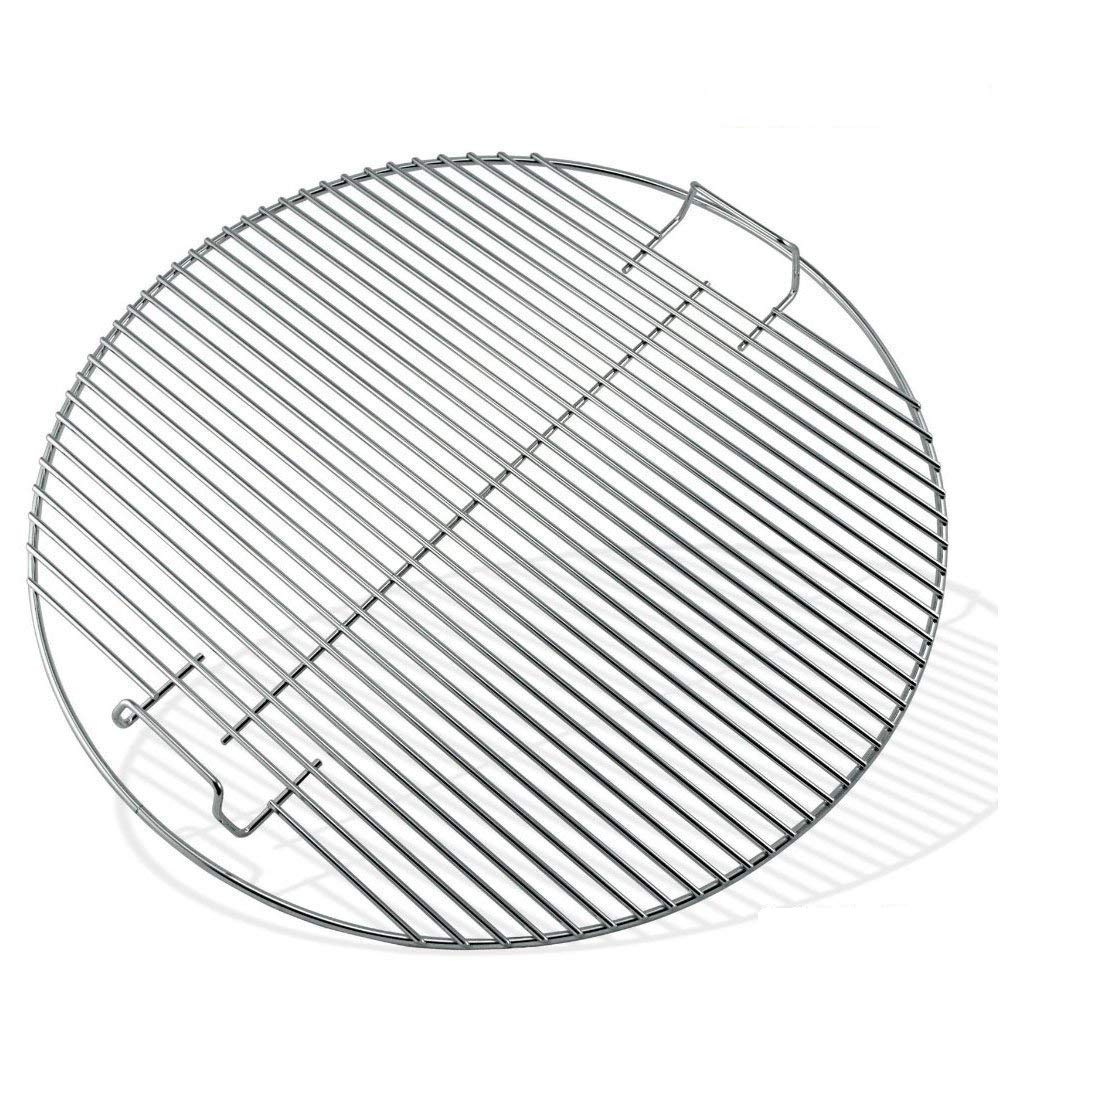 47CM One-Touch Weber charcoal grills Bar.B.Q.S 44.45CM Replacement Cooking Grid Grates for Weber 7432 Kettle Grill Heavy Duty Fit 18.5 Bar-B-Kettle charcoal Smokey Mountain Cooker smoker Gas Grill